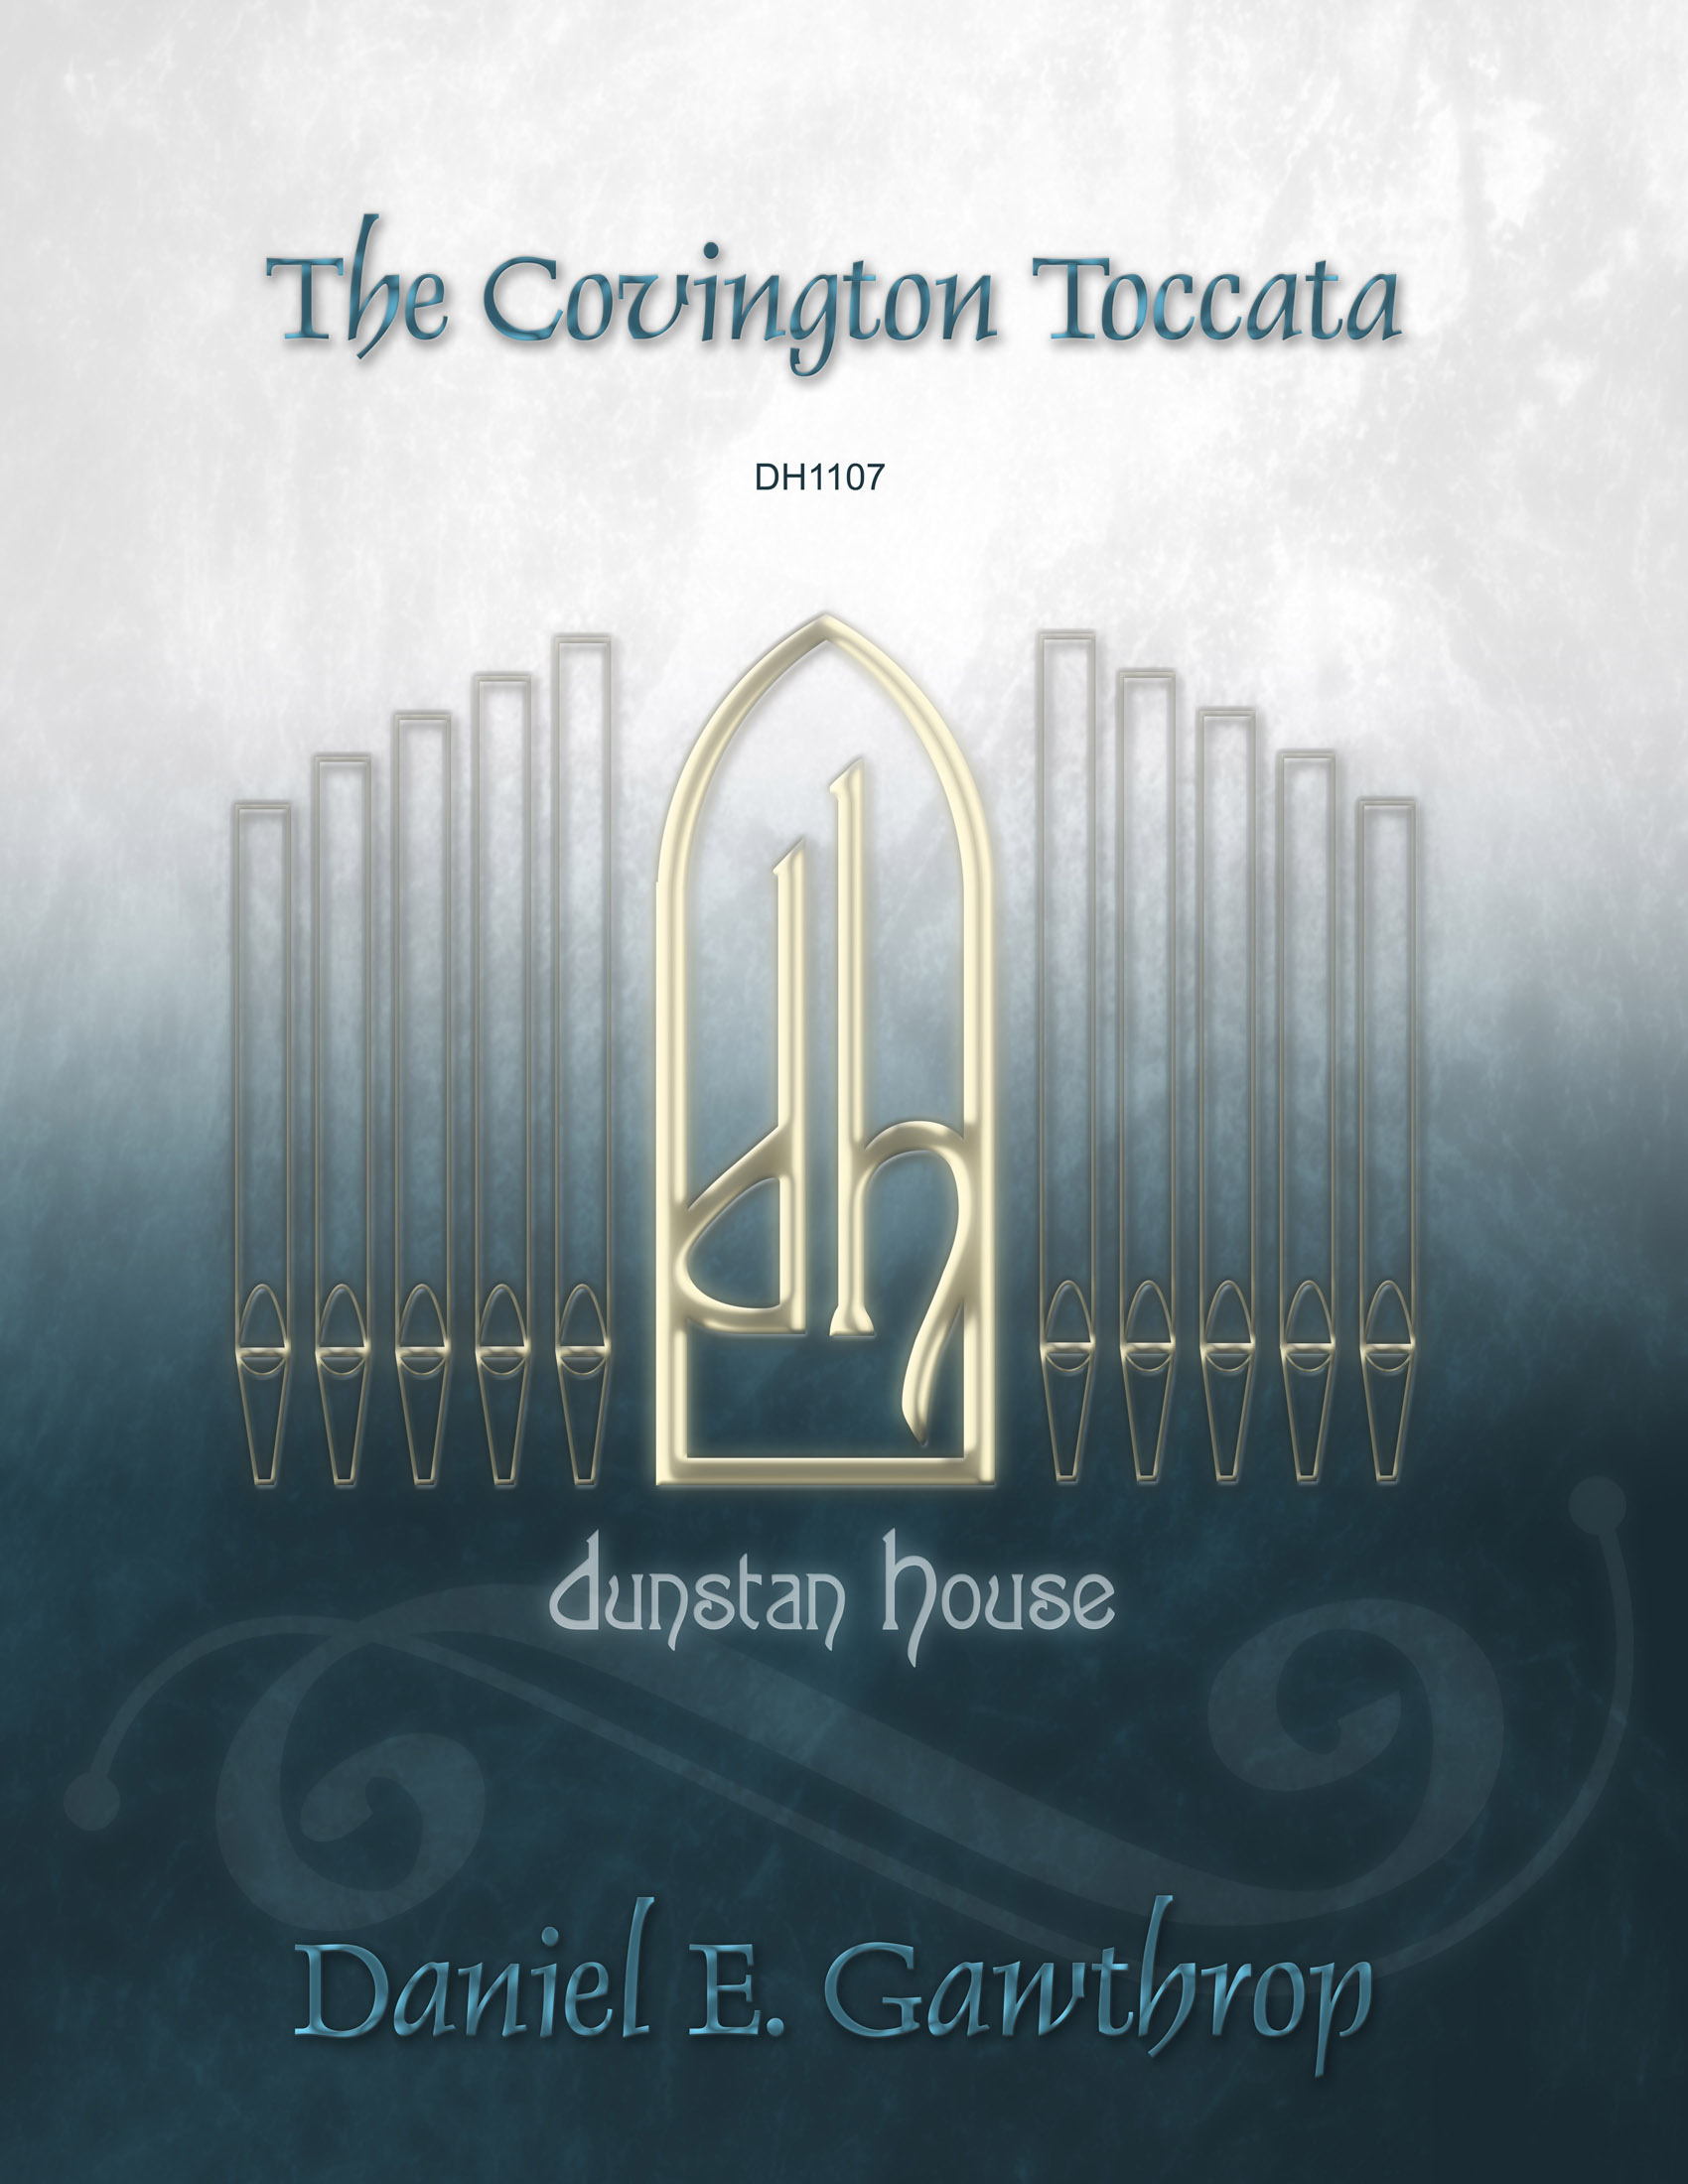 The Covington Toccata for Organ